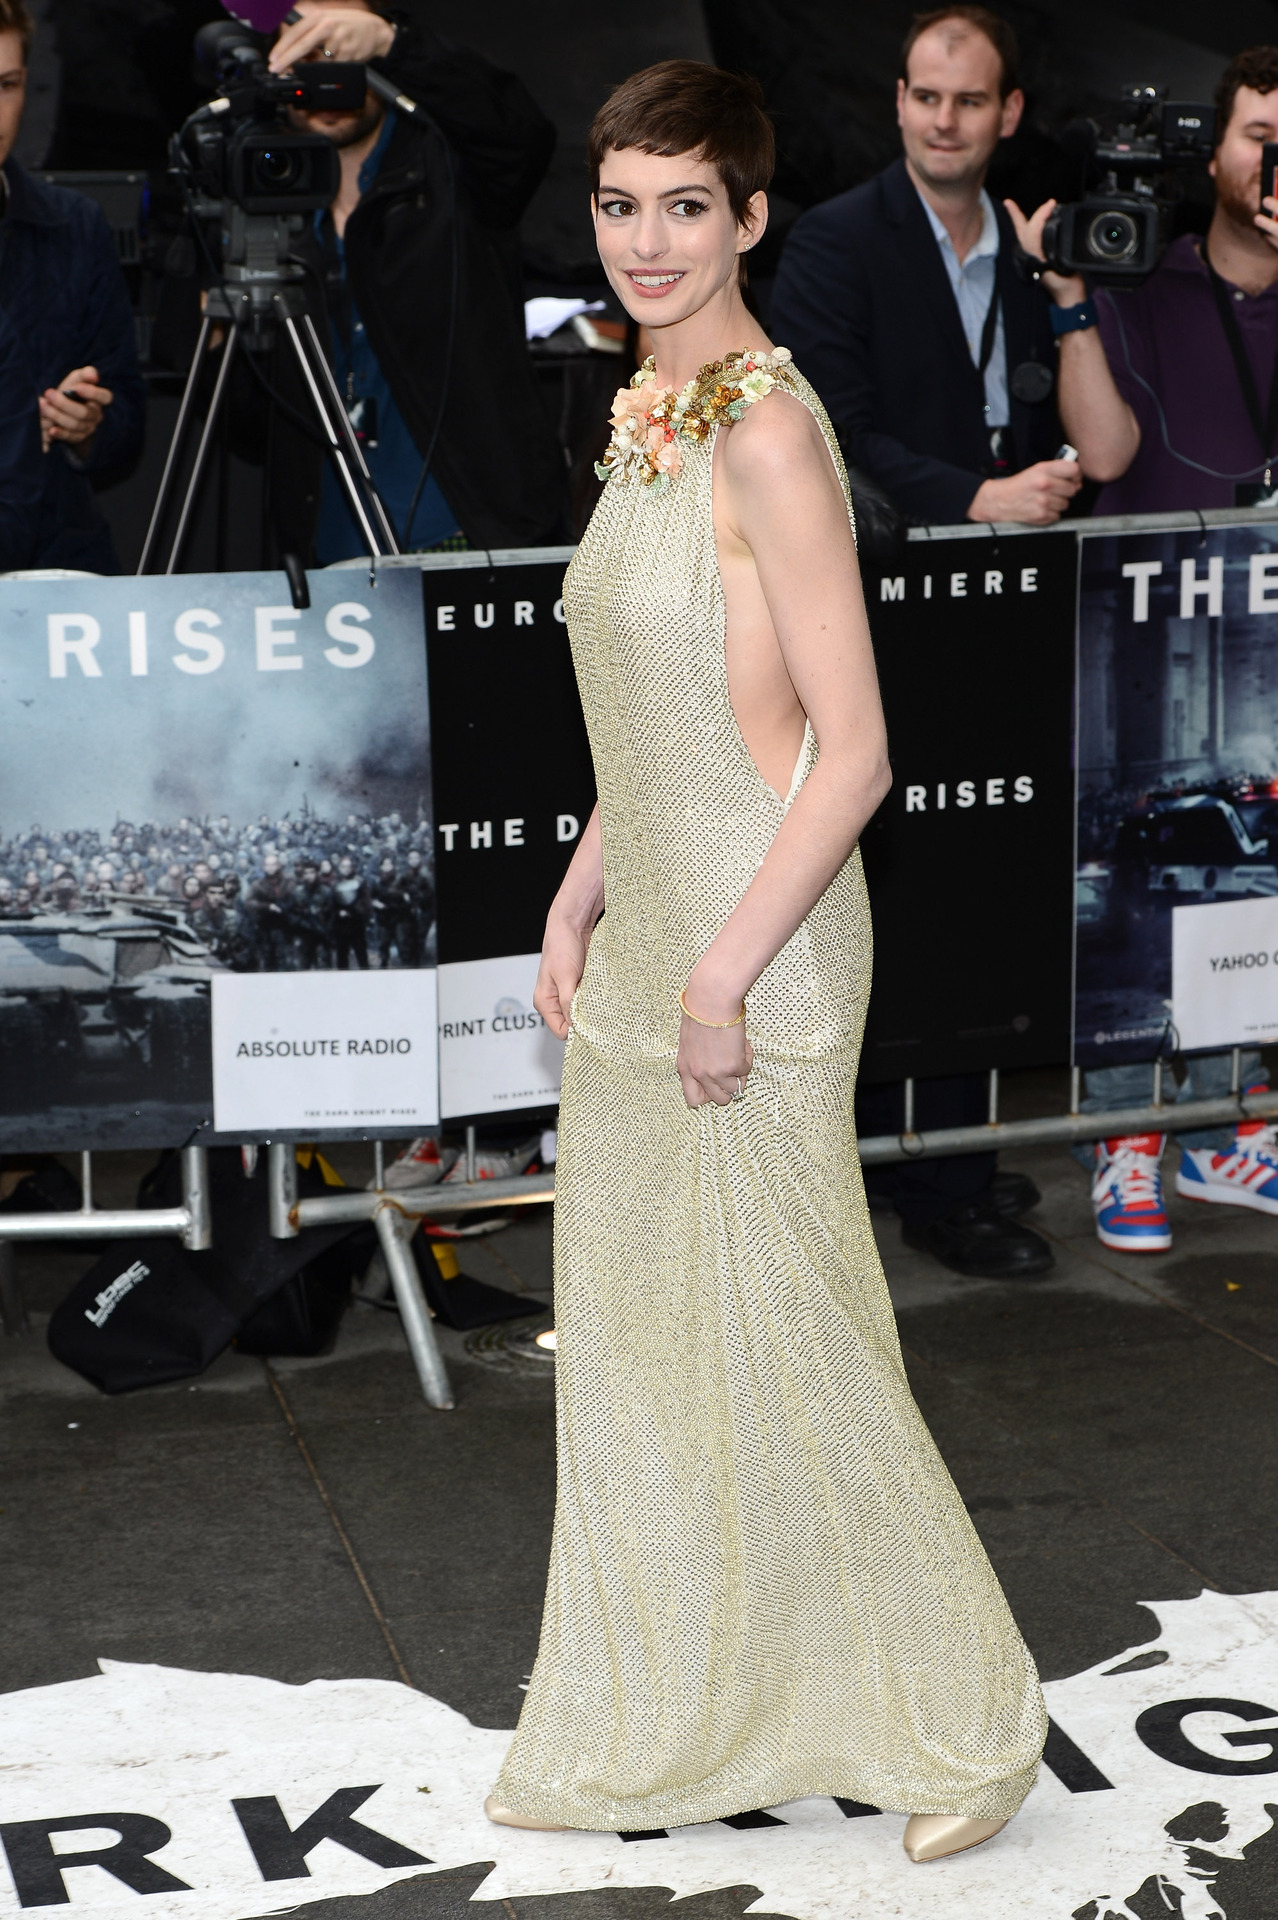 Anne Hathaway (in Gucci) at the London premiere of The Dark Knight Rises, July 18th